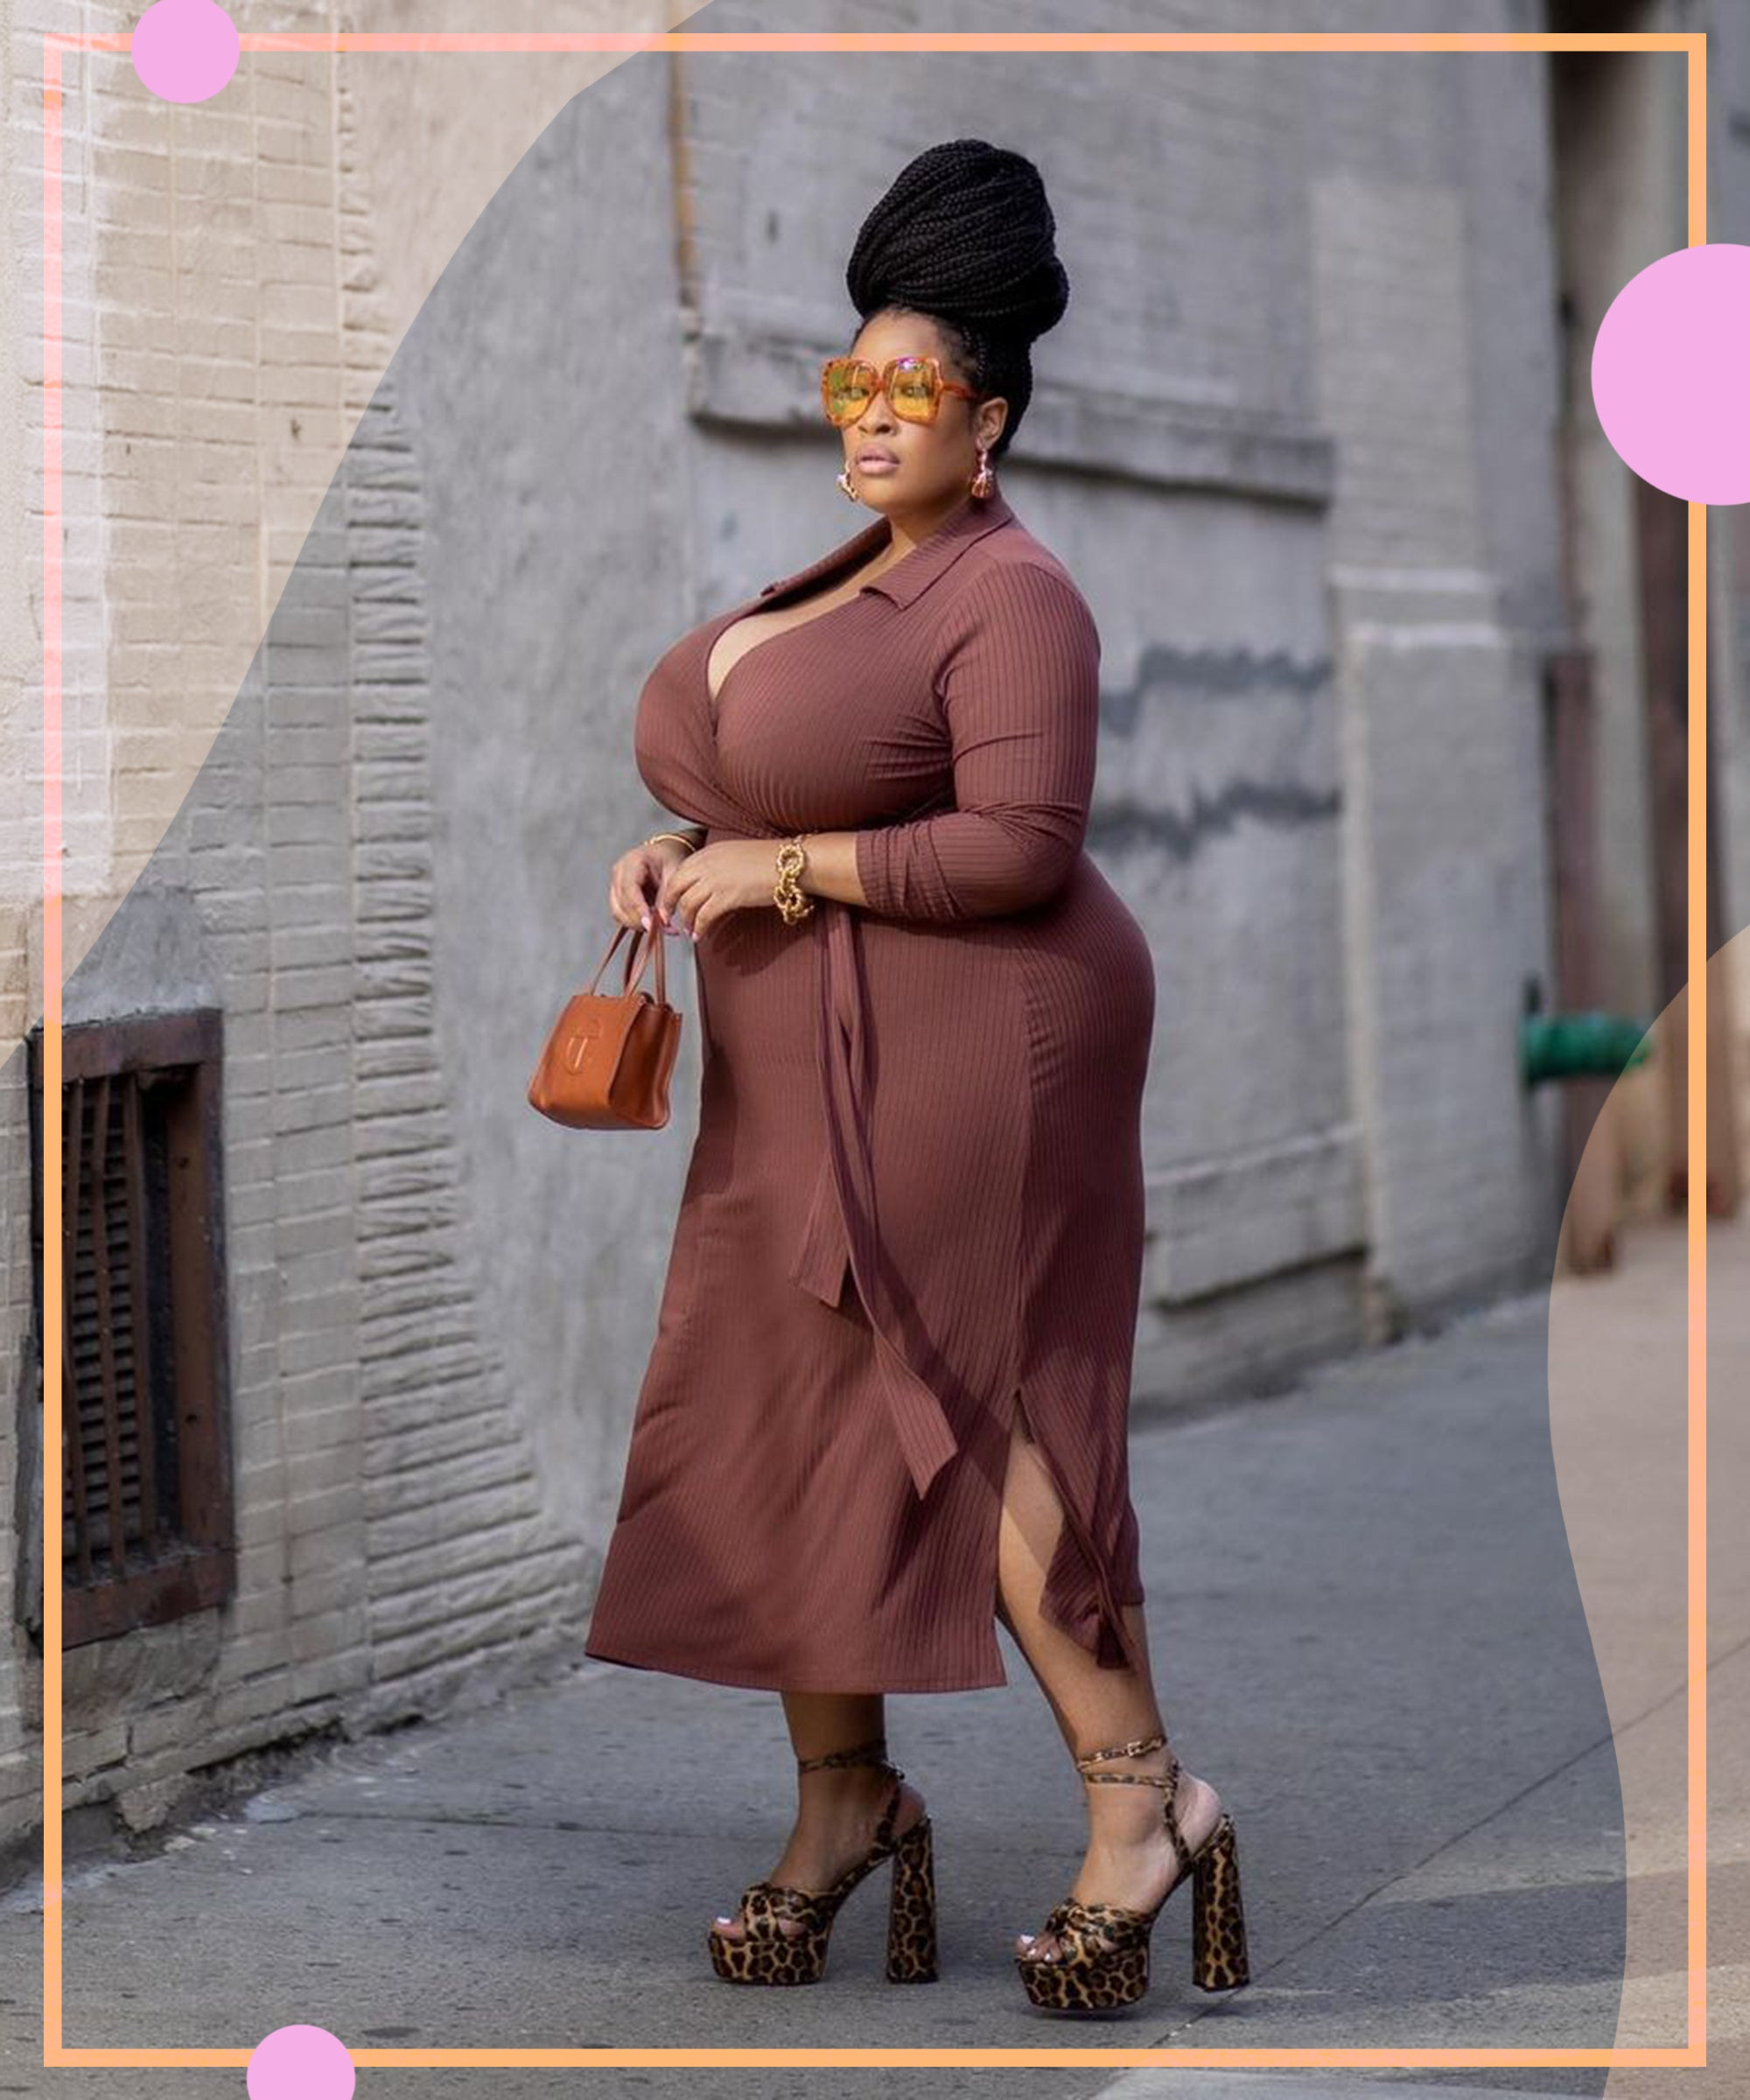 #FatBabesInLuxury Is Trending. Here's What It Means To Plus-Size Creators